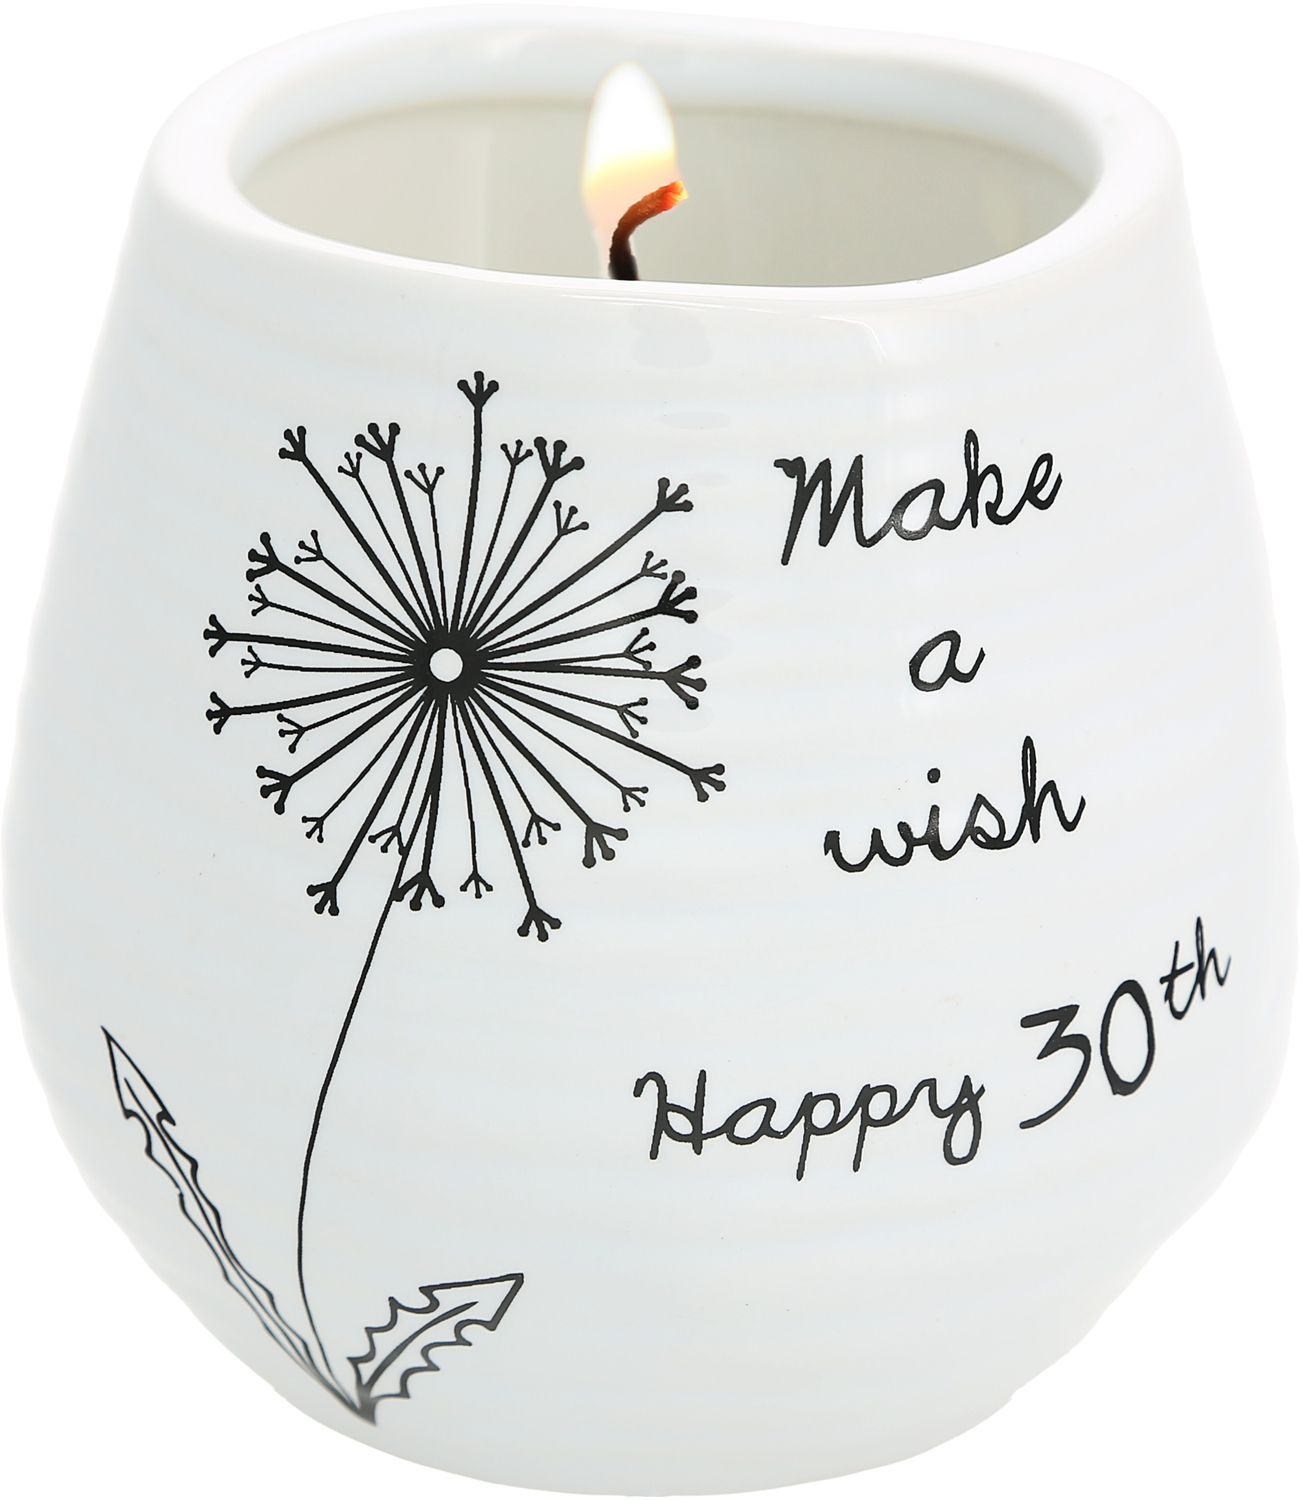 Happy 30th by Dandelion Wishes - Happy 30th - 8 oz - 100% Soy Wax Candle Scent: Serenity